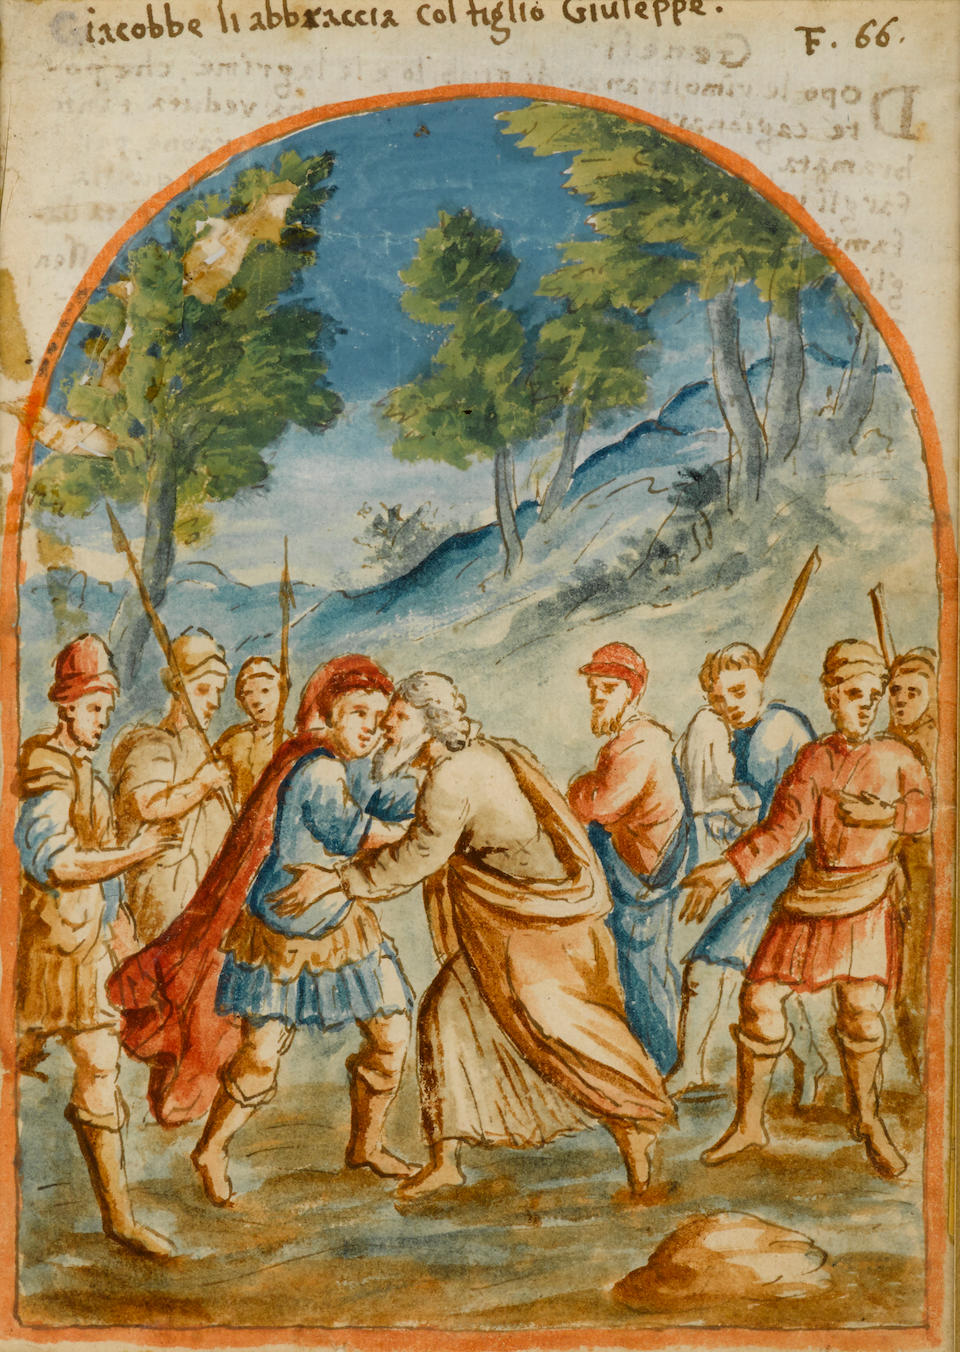 ITALIAN SCHOOL, 17th century A set of six gouaches, scenes from the Bible  each painted in gouache and watercolor with figural scenes in landscape settings within a niche, with Italian inscription above and Italian text on the reverse, later double-sided giltwood frames.